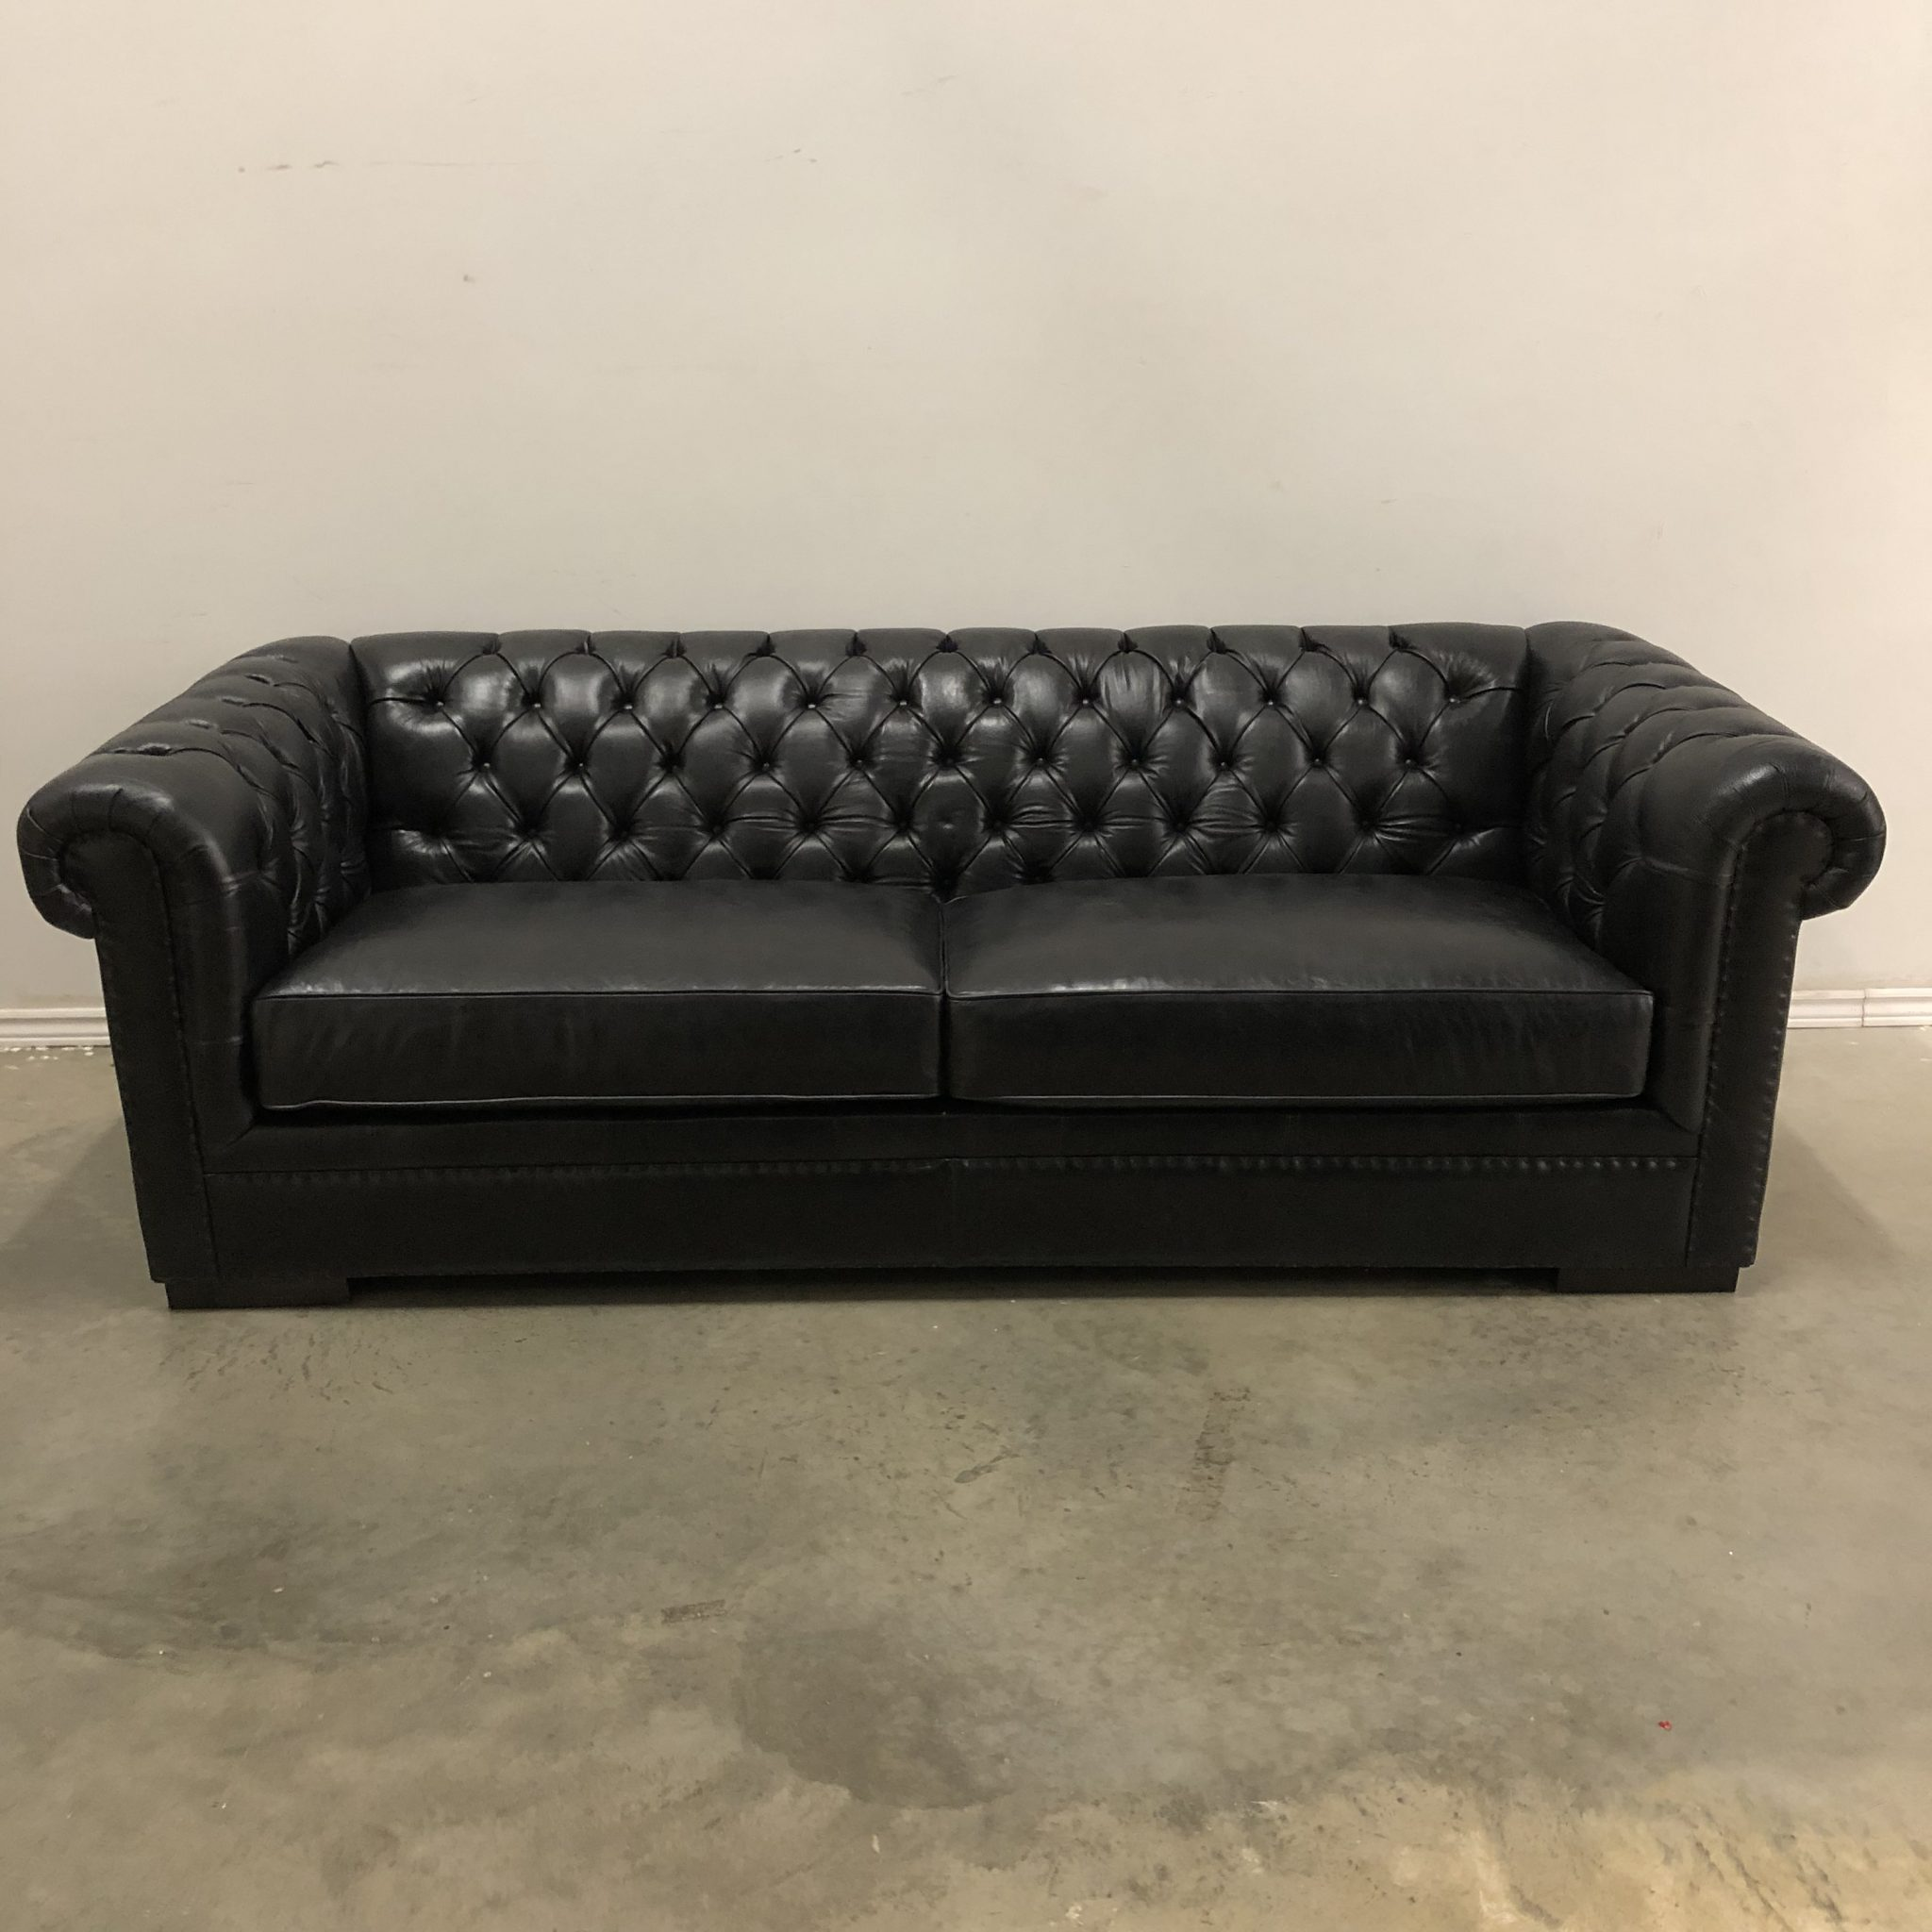 KENNEDY TUFTED LEATHER SOFA